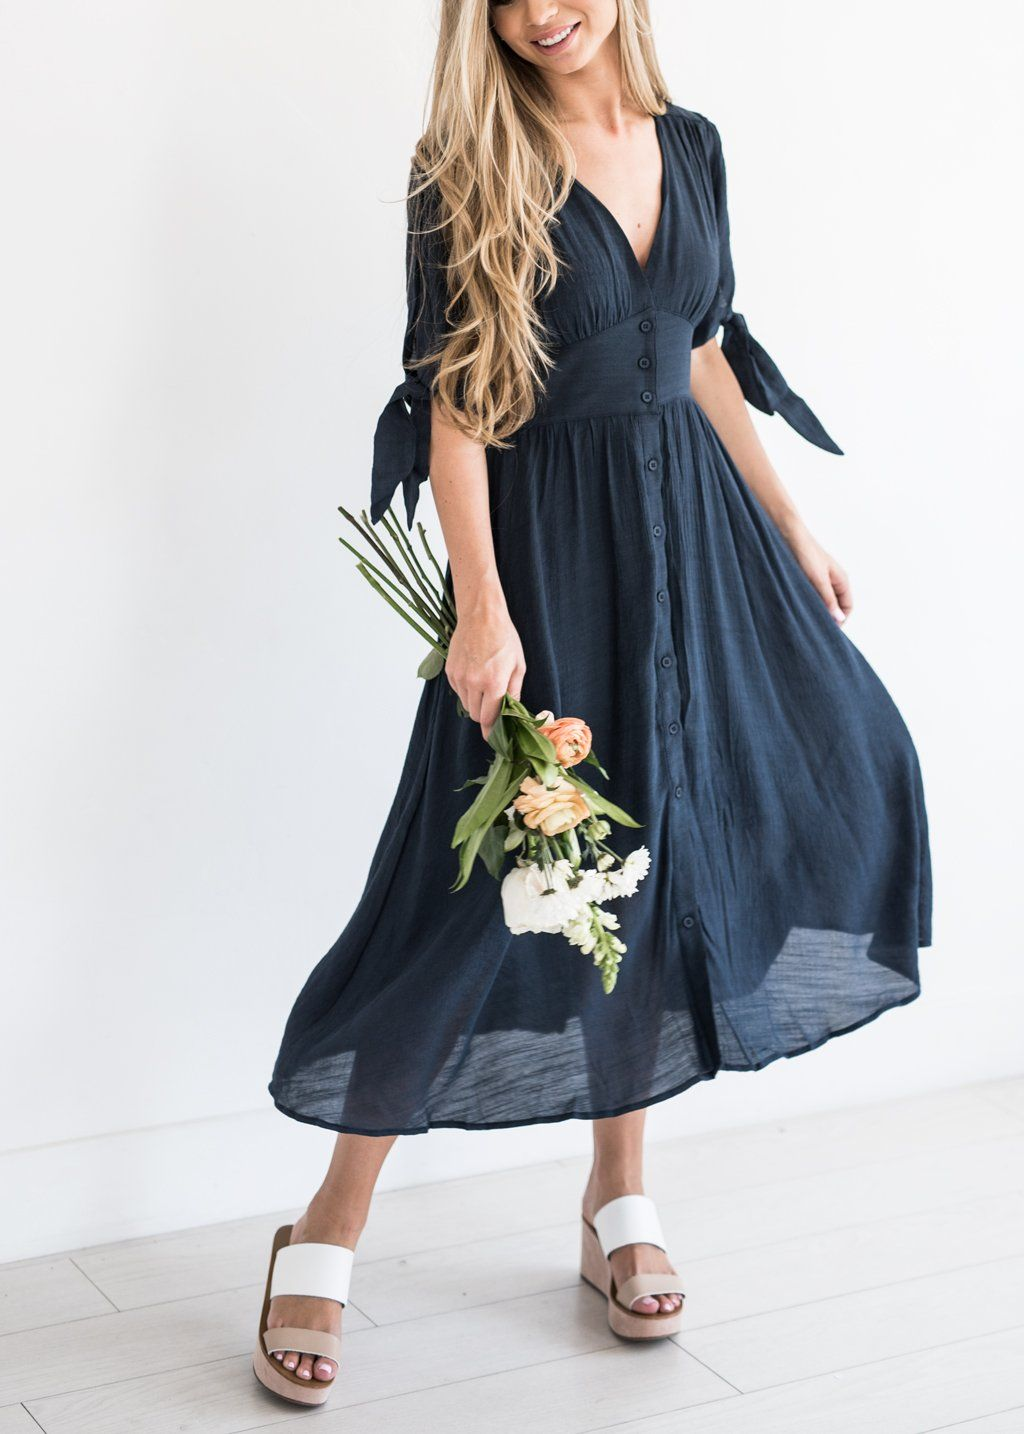 Prussian wind button down dress dresses pinterest dresses